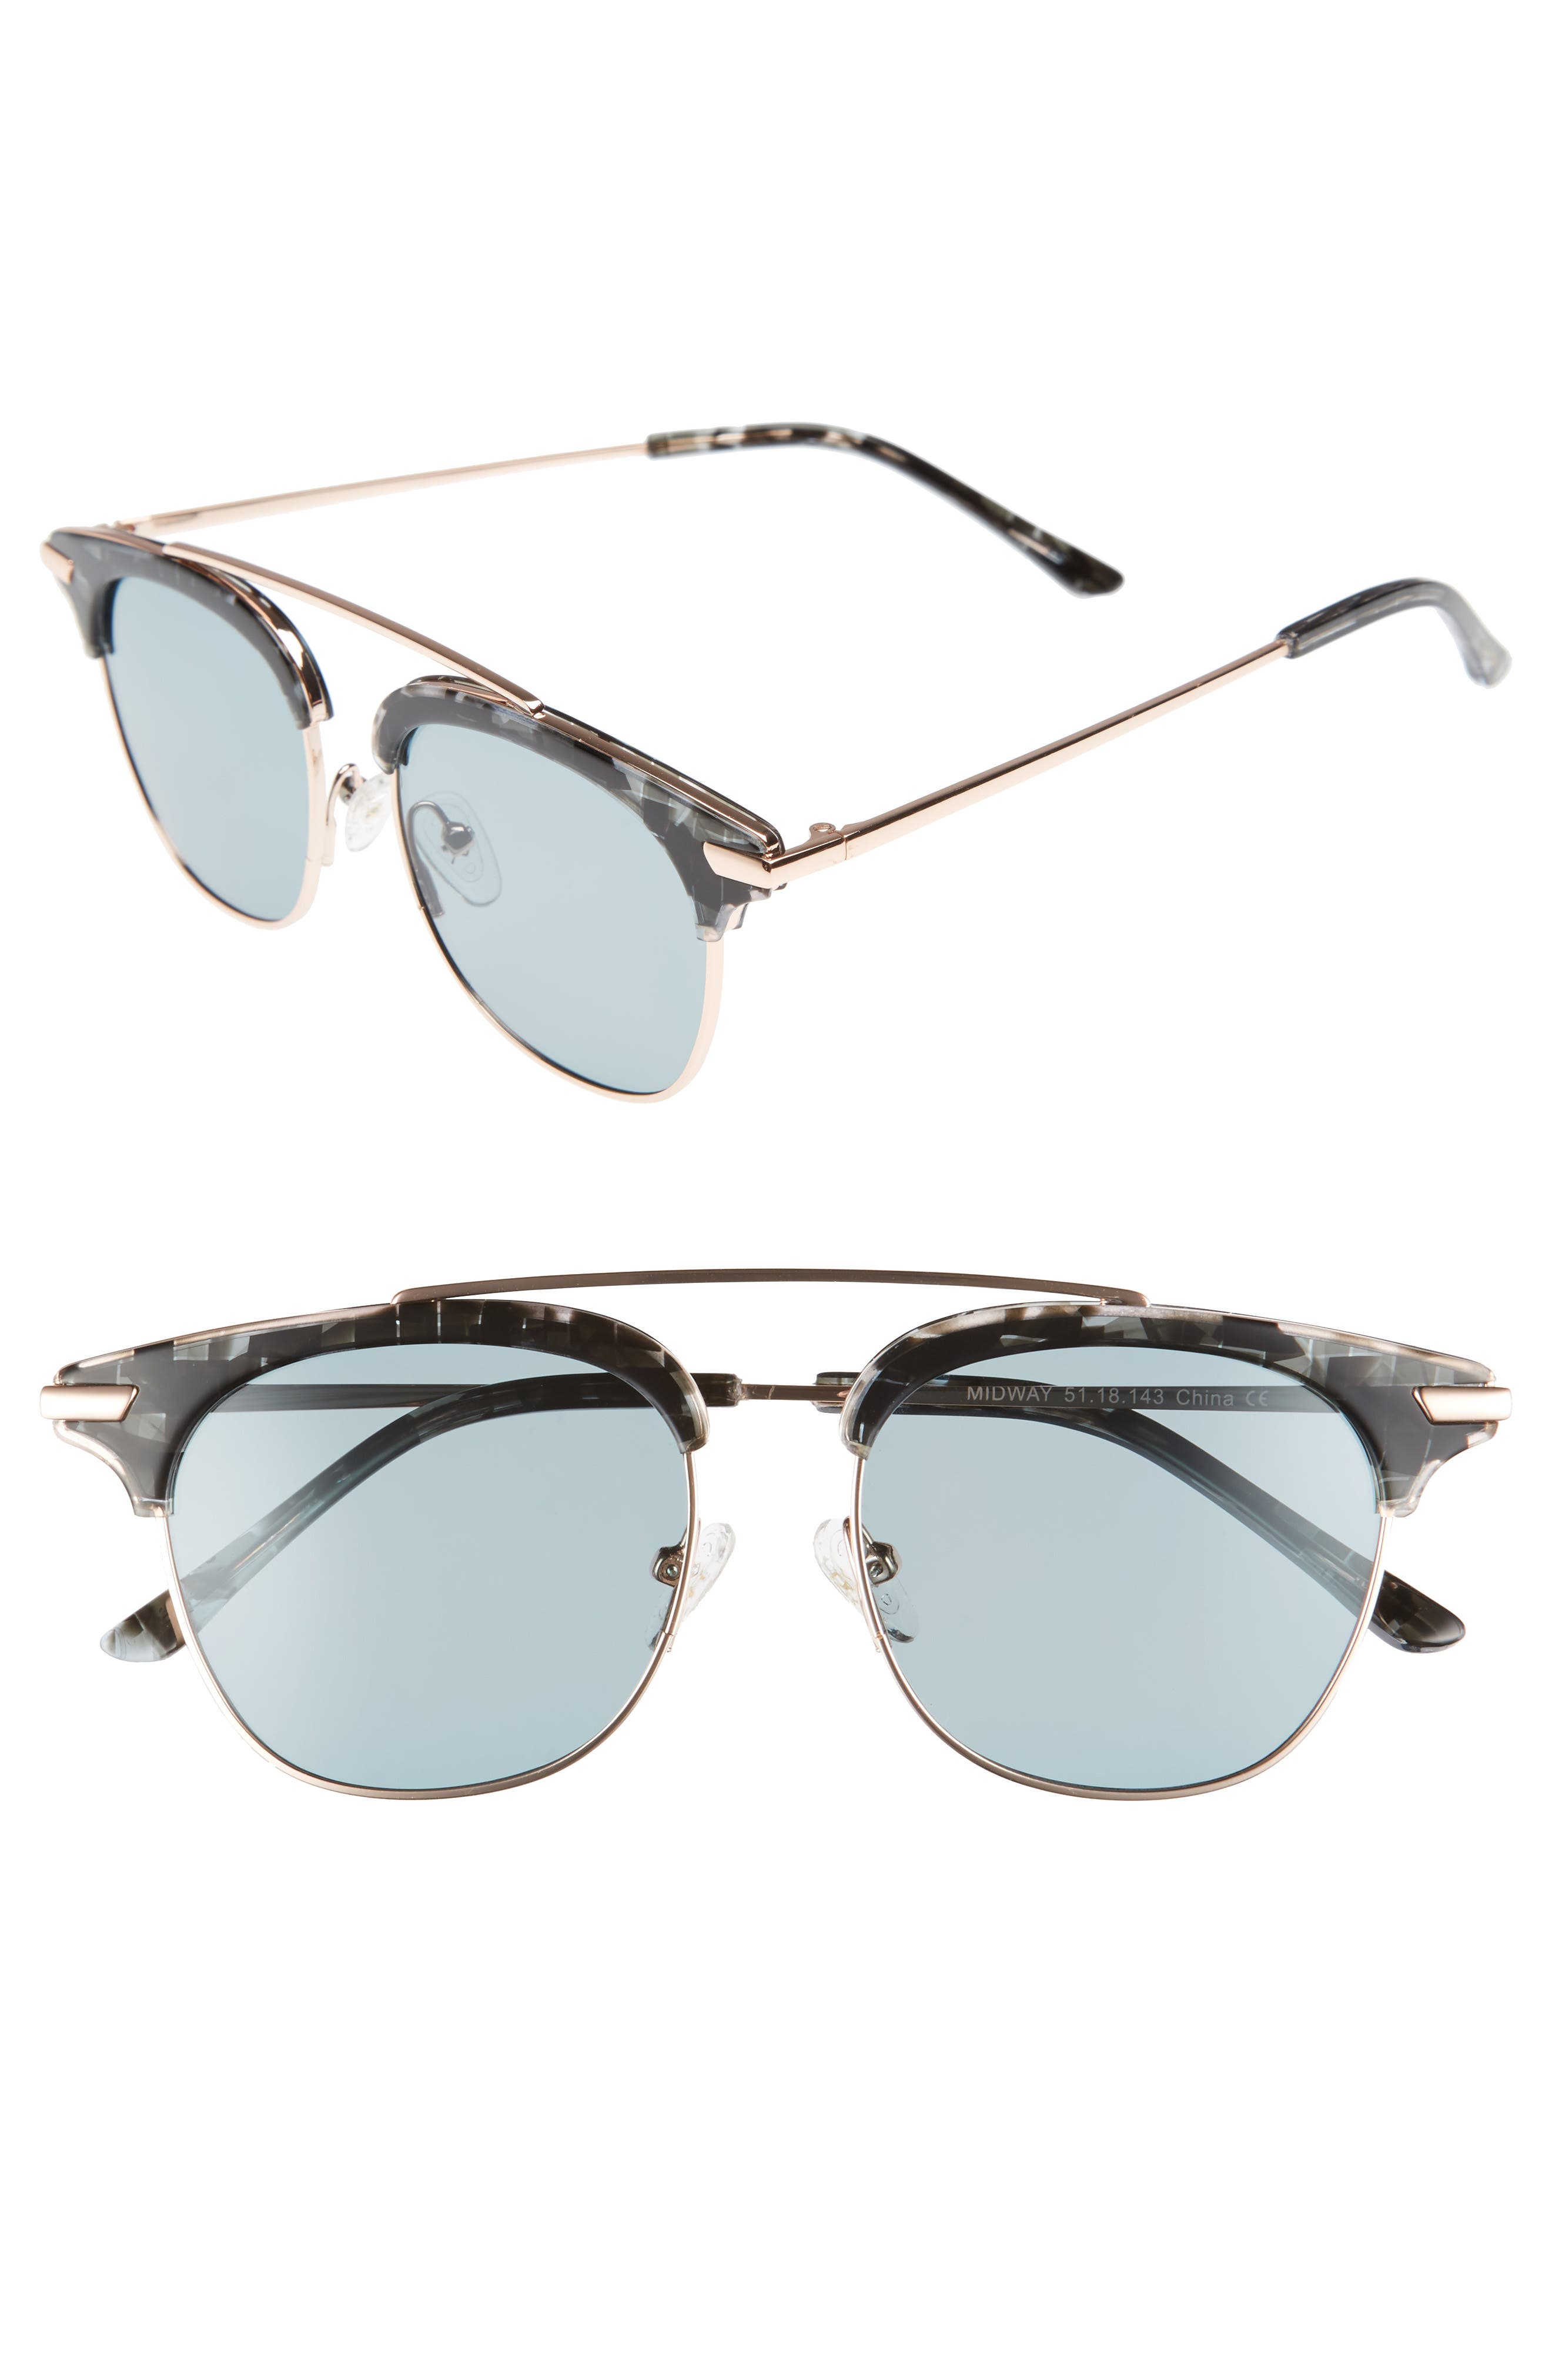 Midway 51mm Polarized Brow Bar Sunglasses,                             Main thumbnail 1, color,                             020